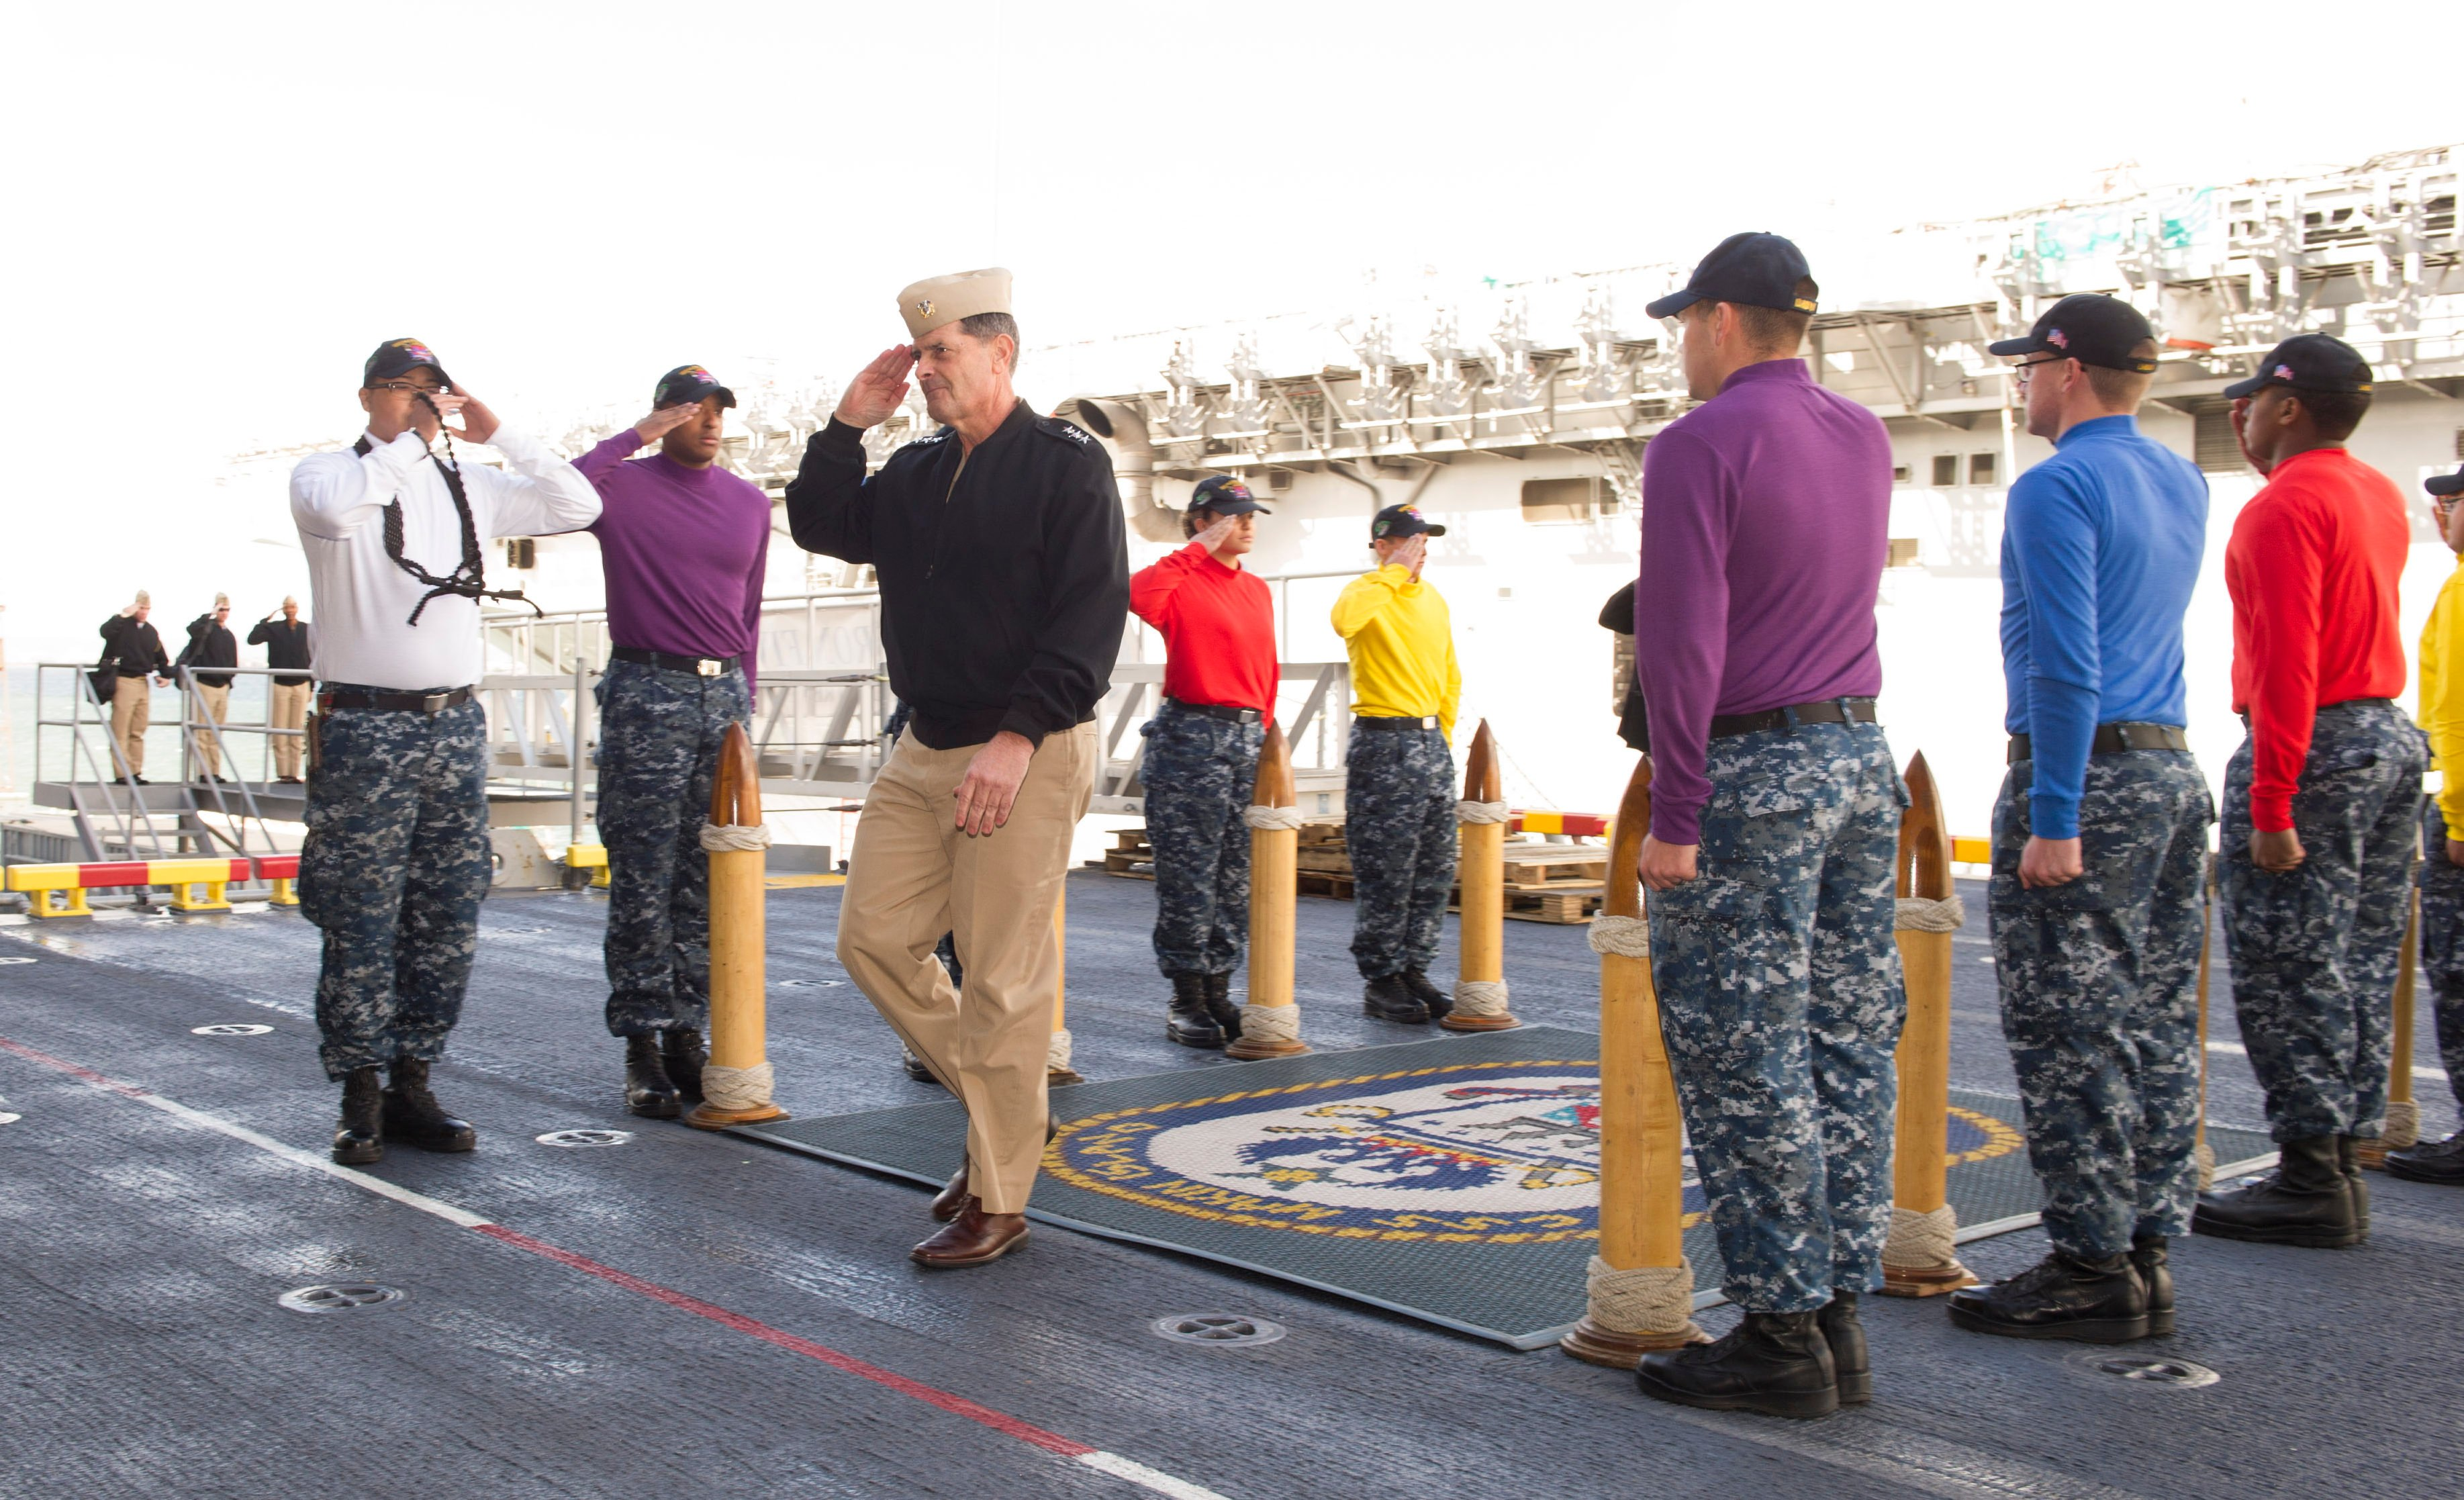 Chief of Naval Personnel, Vice Adm. Bill Moran is piped aboard the amphibious assault ship USS Makin Island (LHD 8) in San Diego on Jan. 7, 2016, where he held an all hands call during his first stop on a Pacific Fleet tour. US Navy photo.